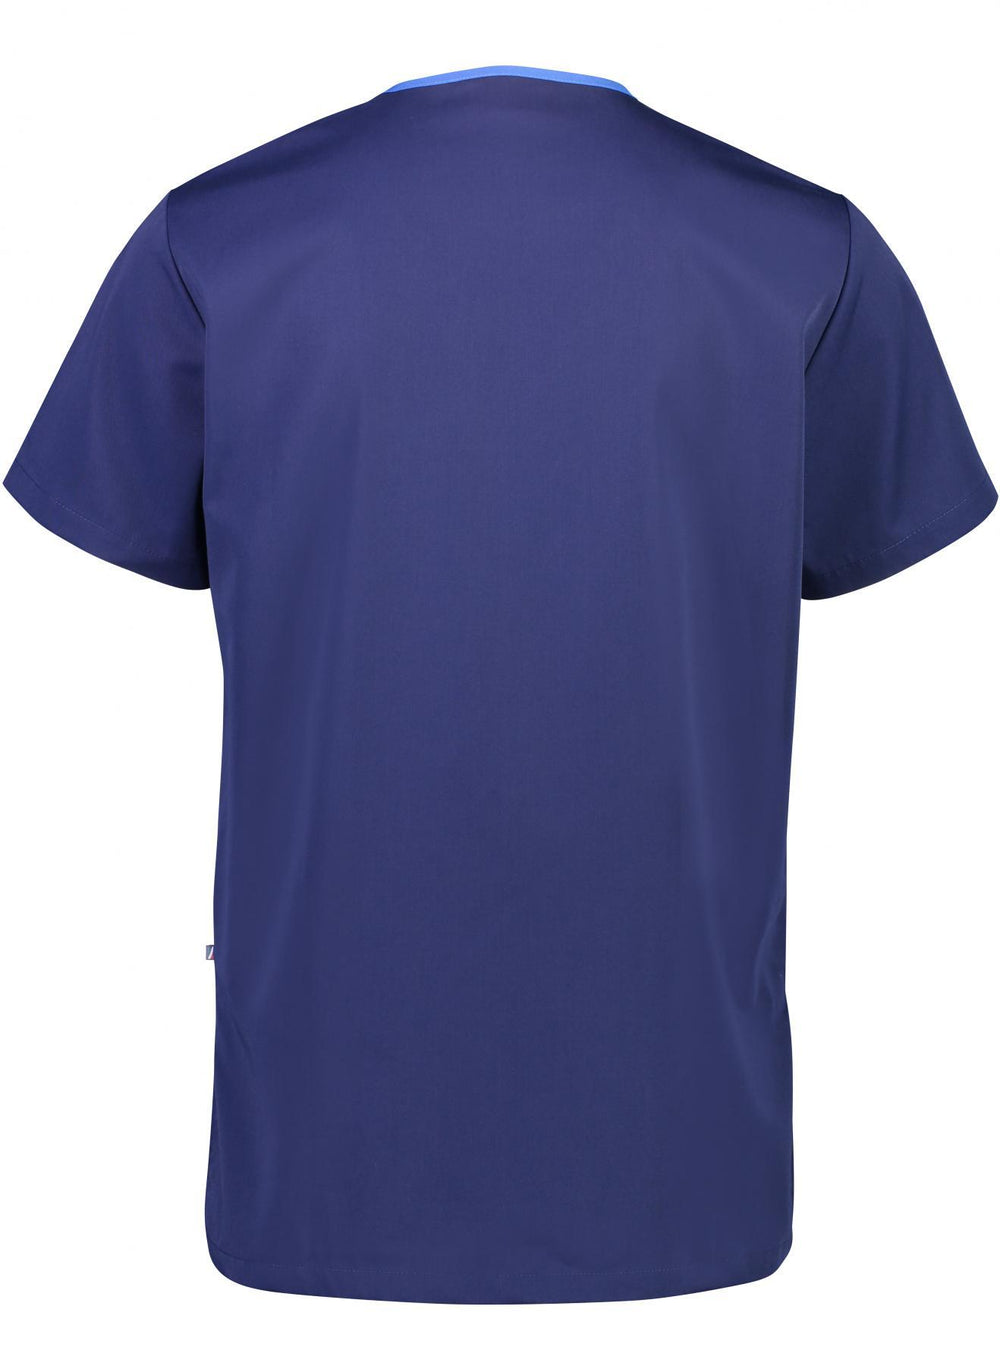 Mens River Scrub Top